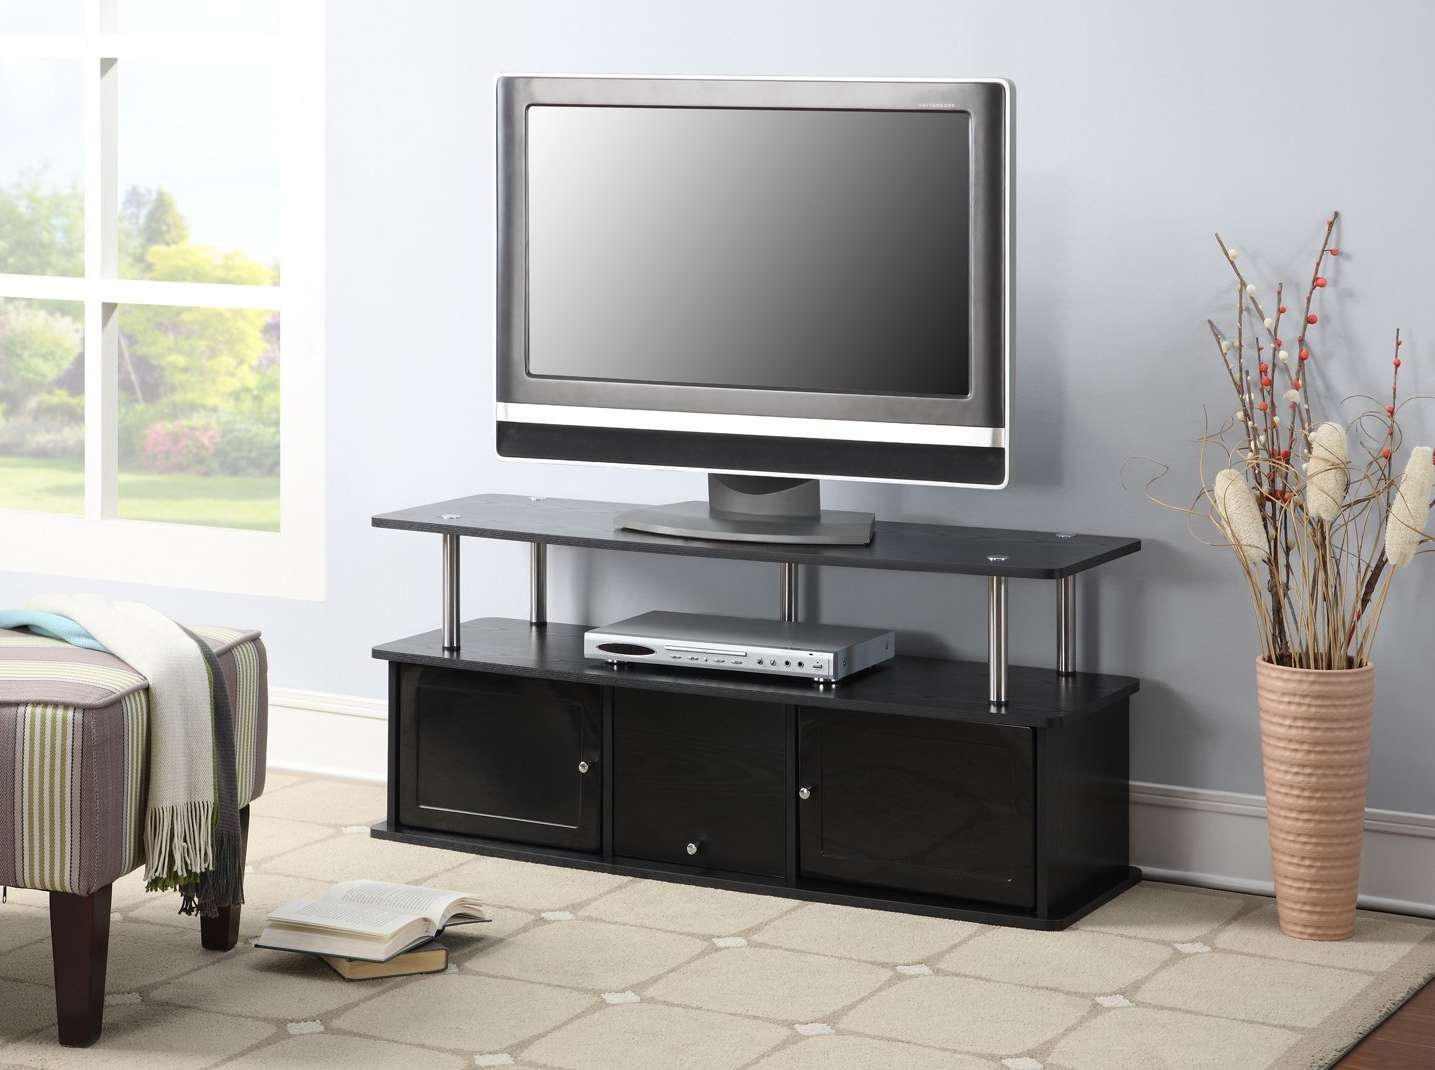 Black Small Tv Stands Tags : 40 Stunning Small Black Tv Stand Regarding Small Black Tv Cabinets (View 5 of 20)